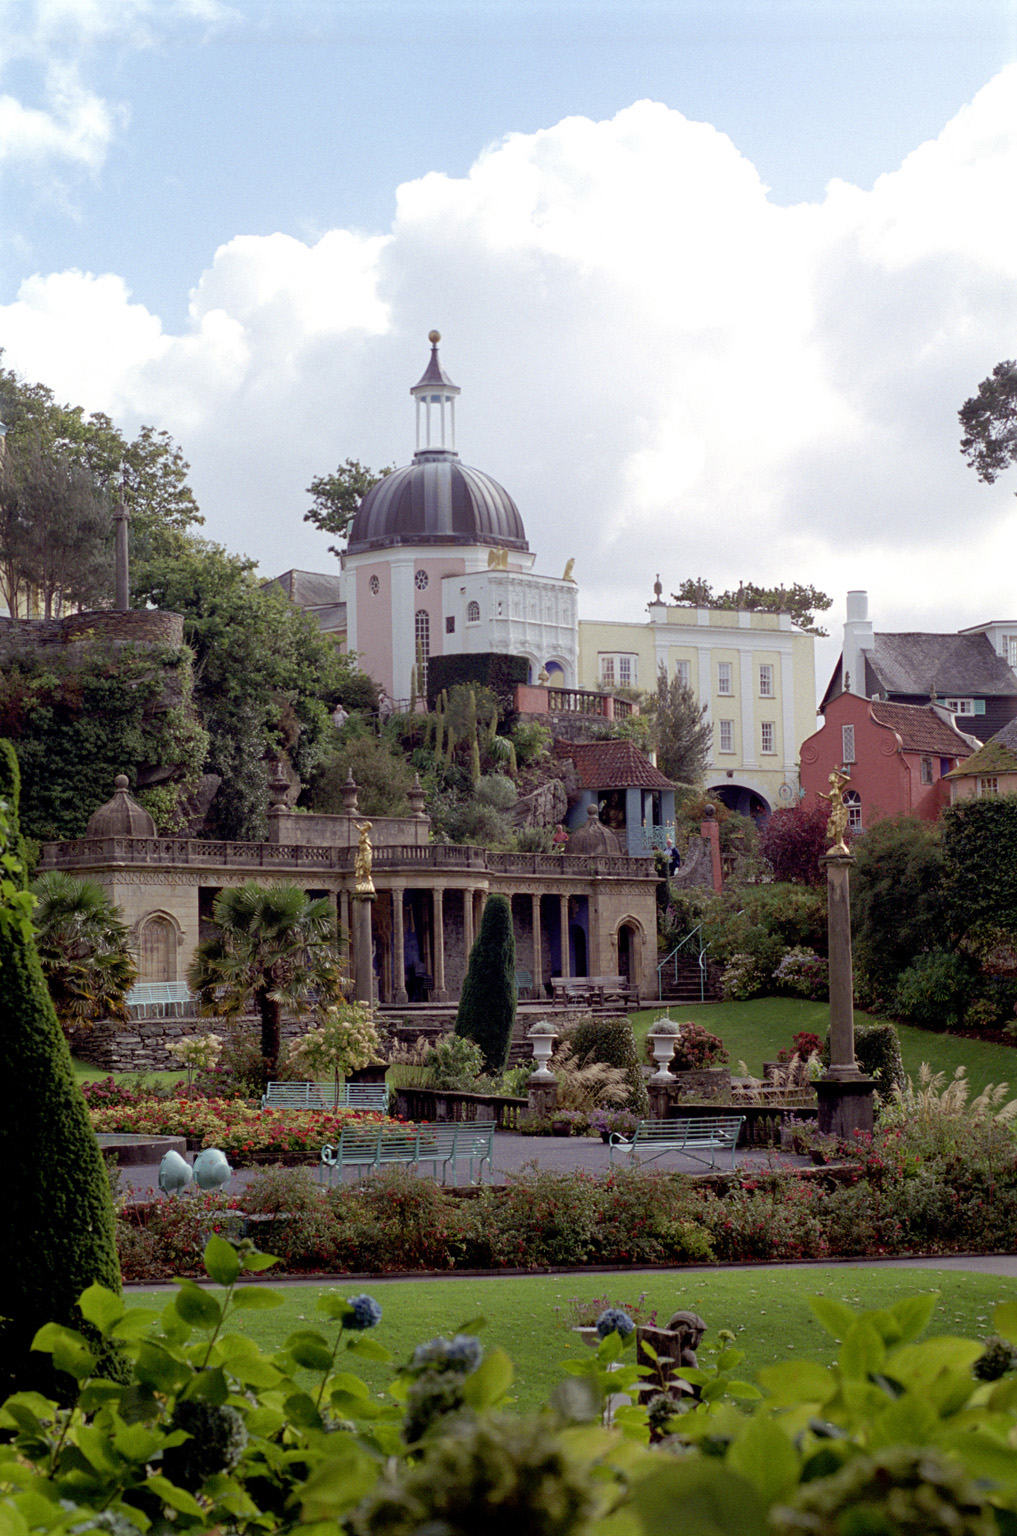 Scenic view of the architecture in Portmeirion, a village in North Wales modelled on an Italian town and a popular tourist attraction